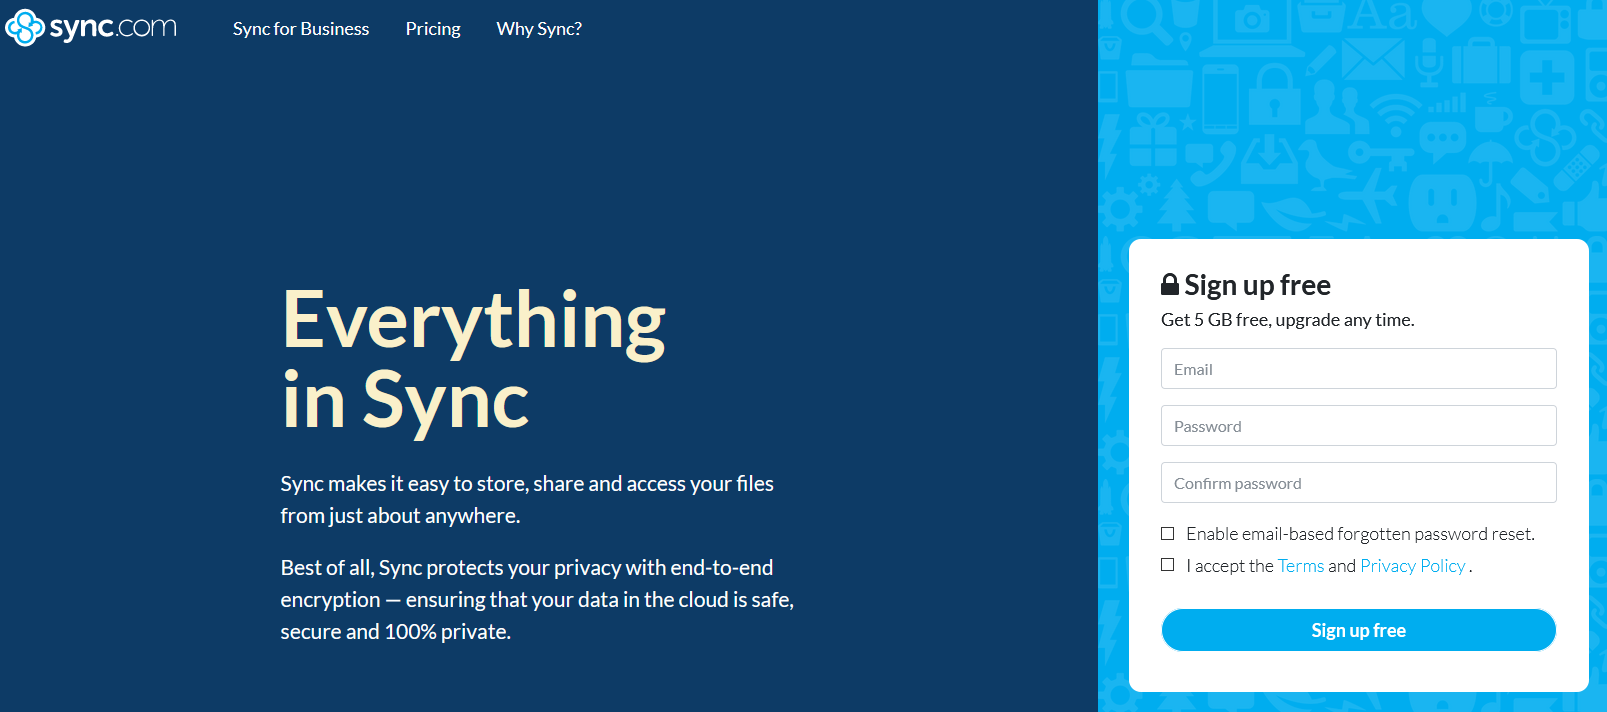 The Sync website.